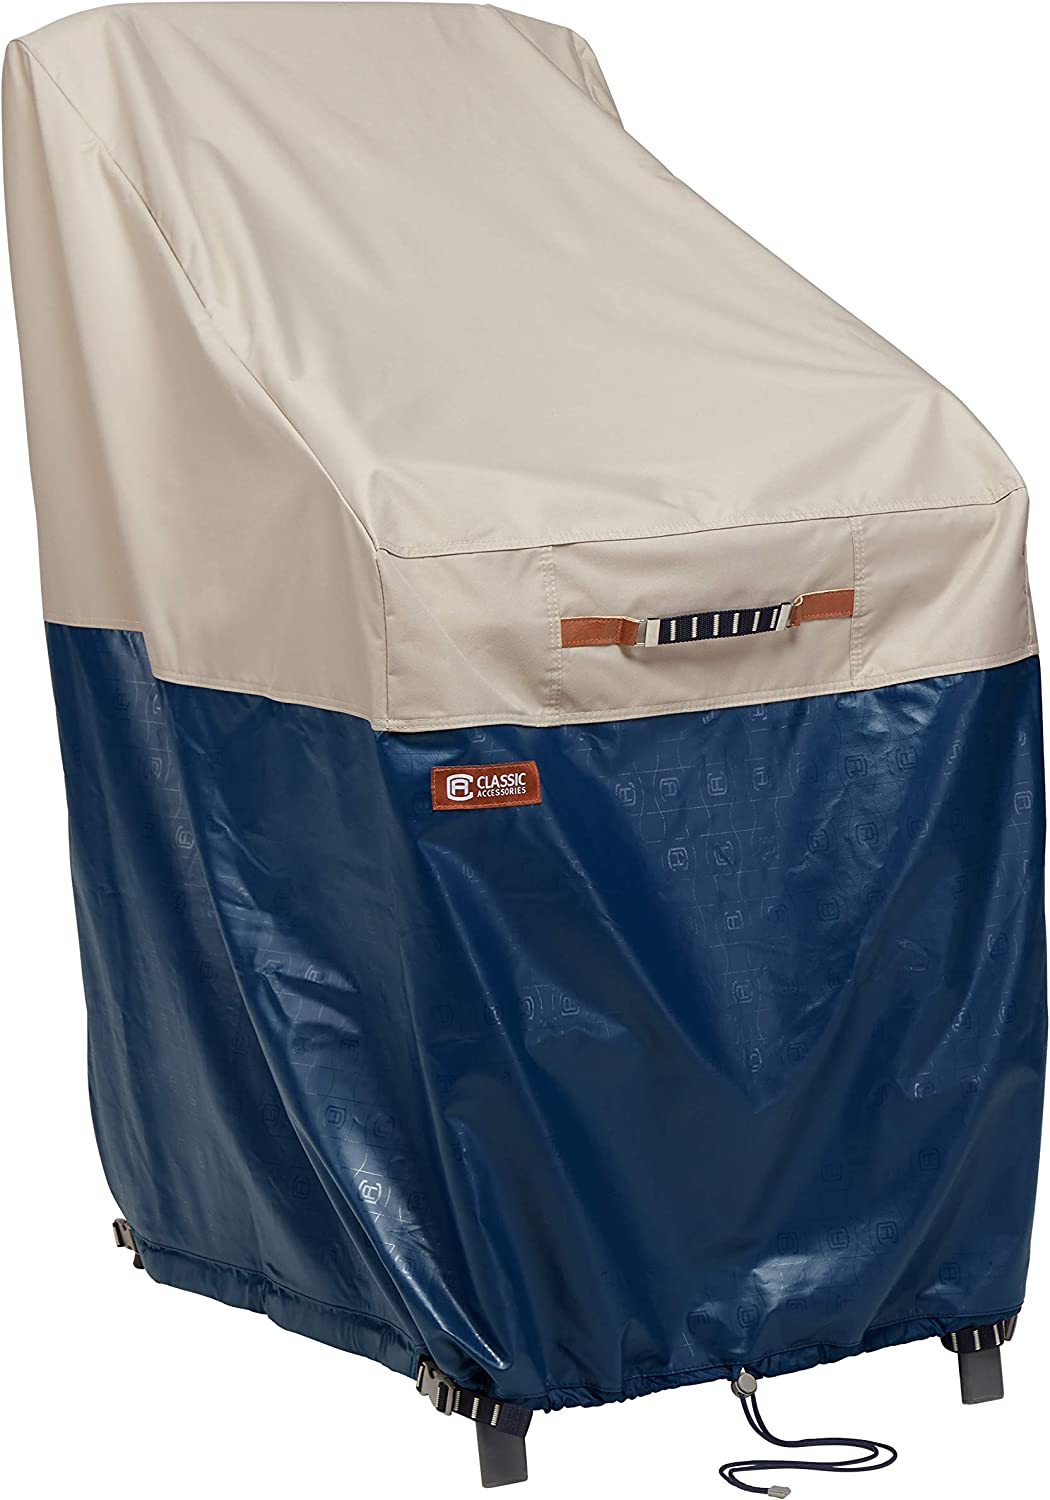 National products Spasm price Classic Accessories 56-058-014601-EC Stackable Cover Fog Chair